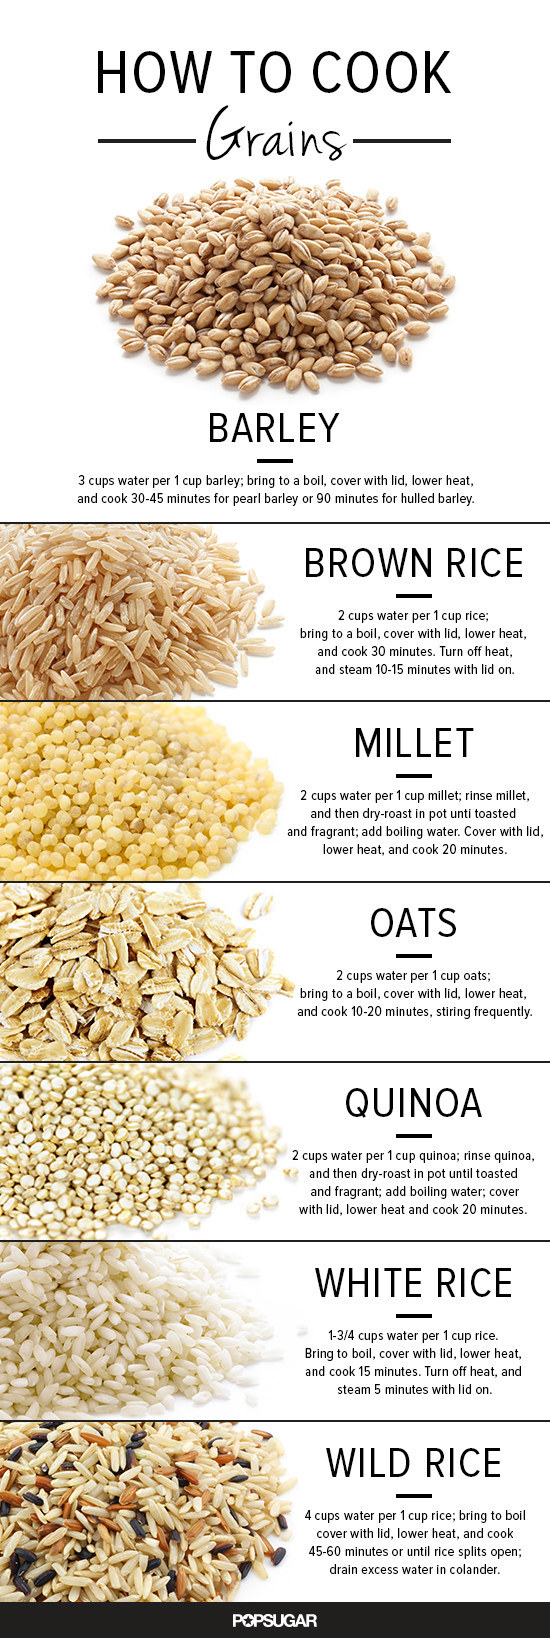 how-to-cook-grains